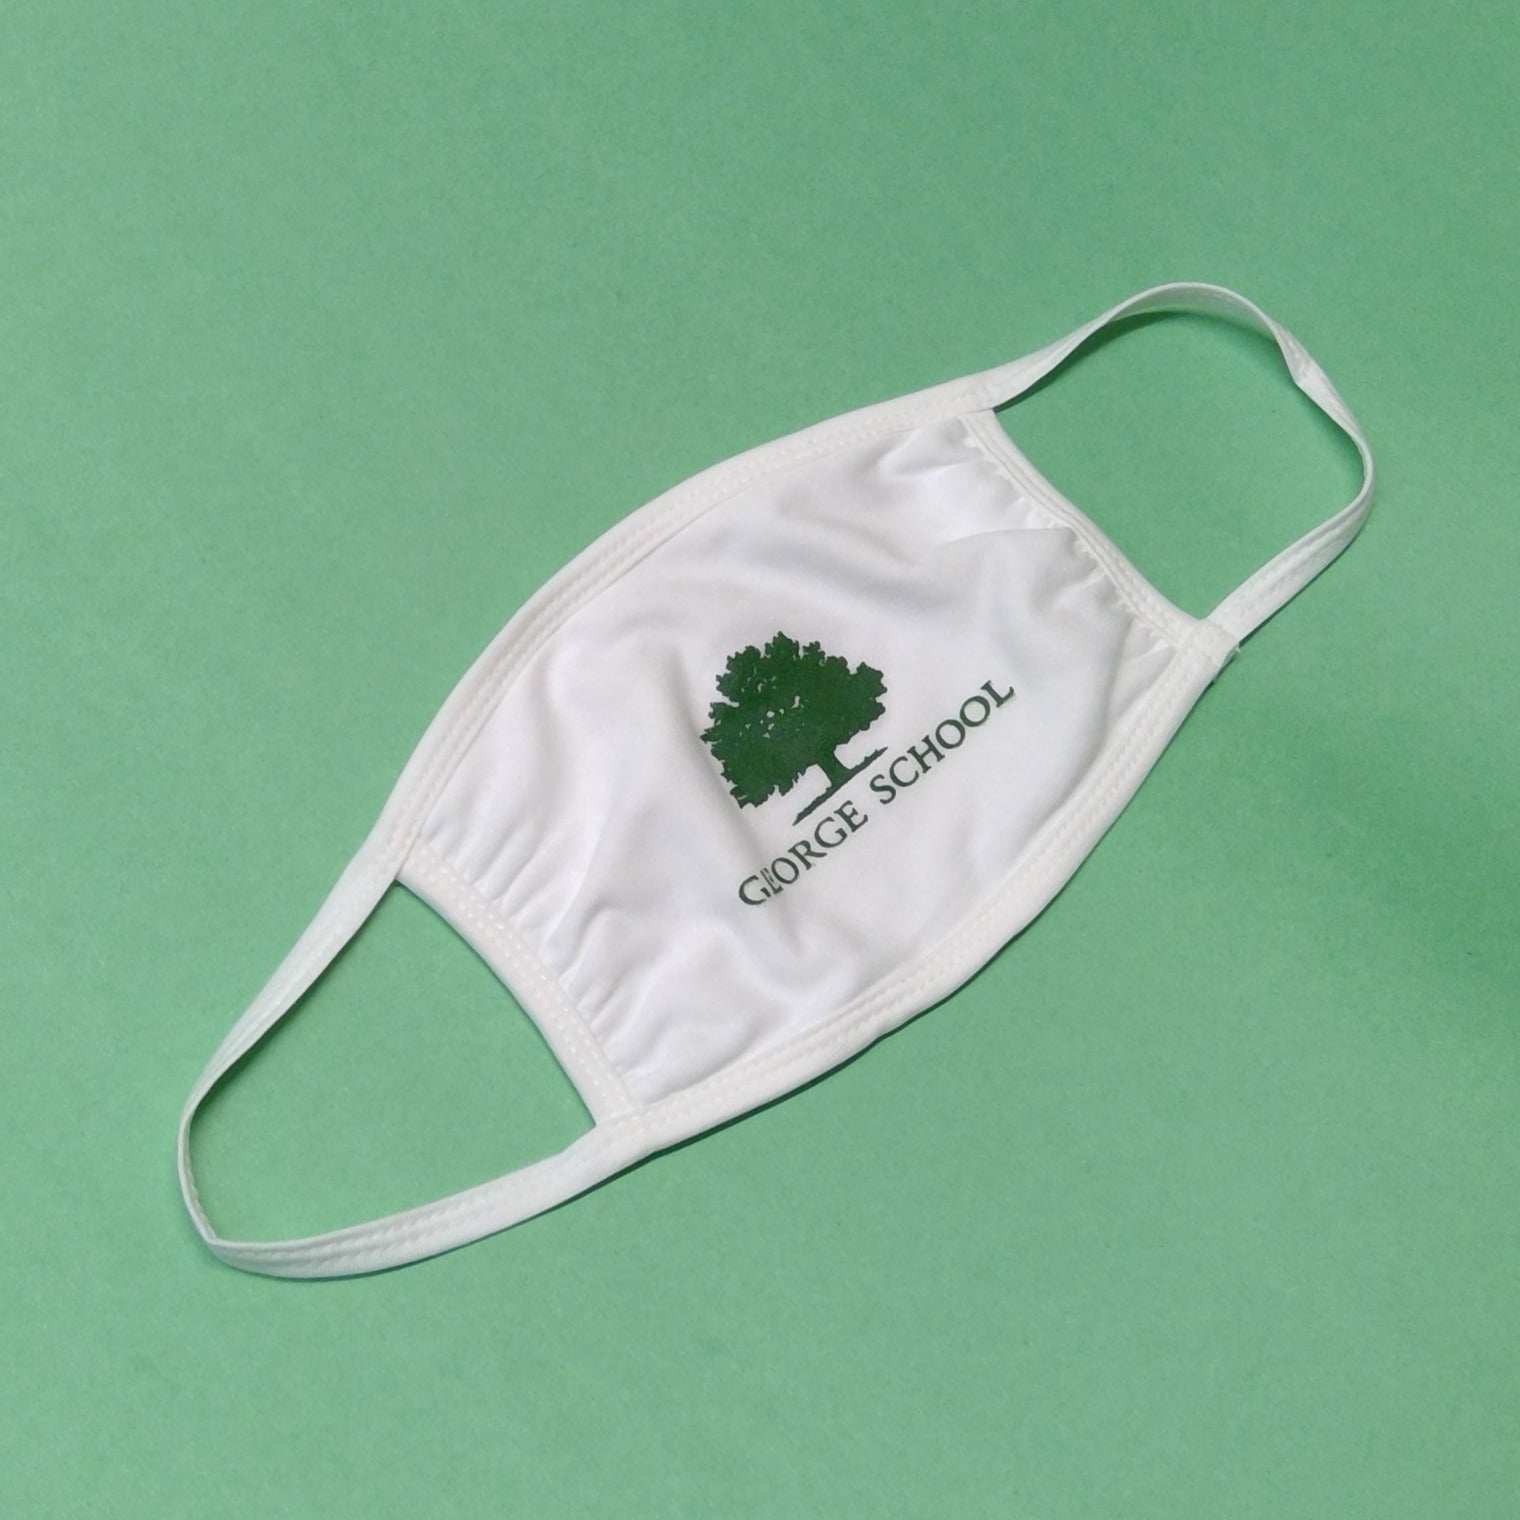 Mask - White w/ Green Tree and George School Name